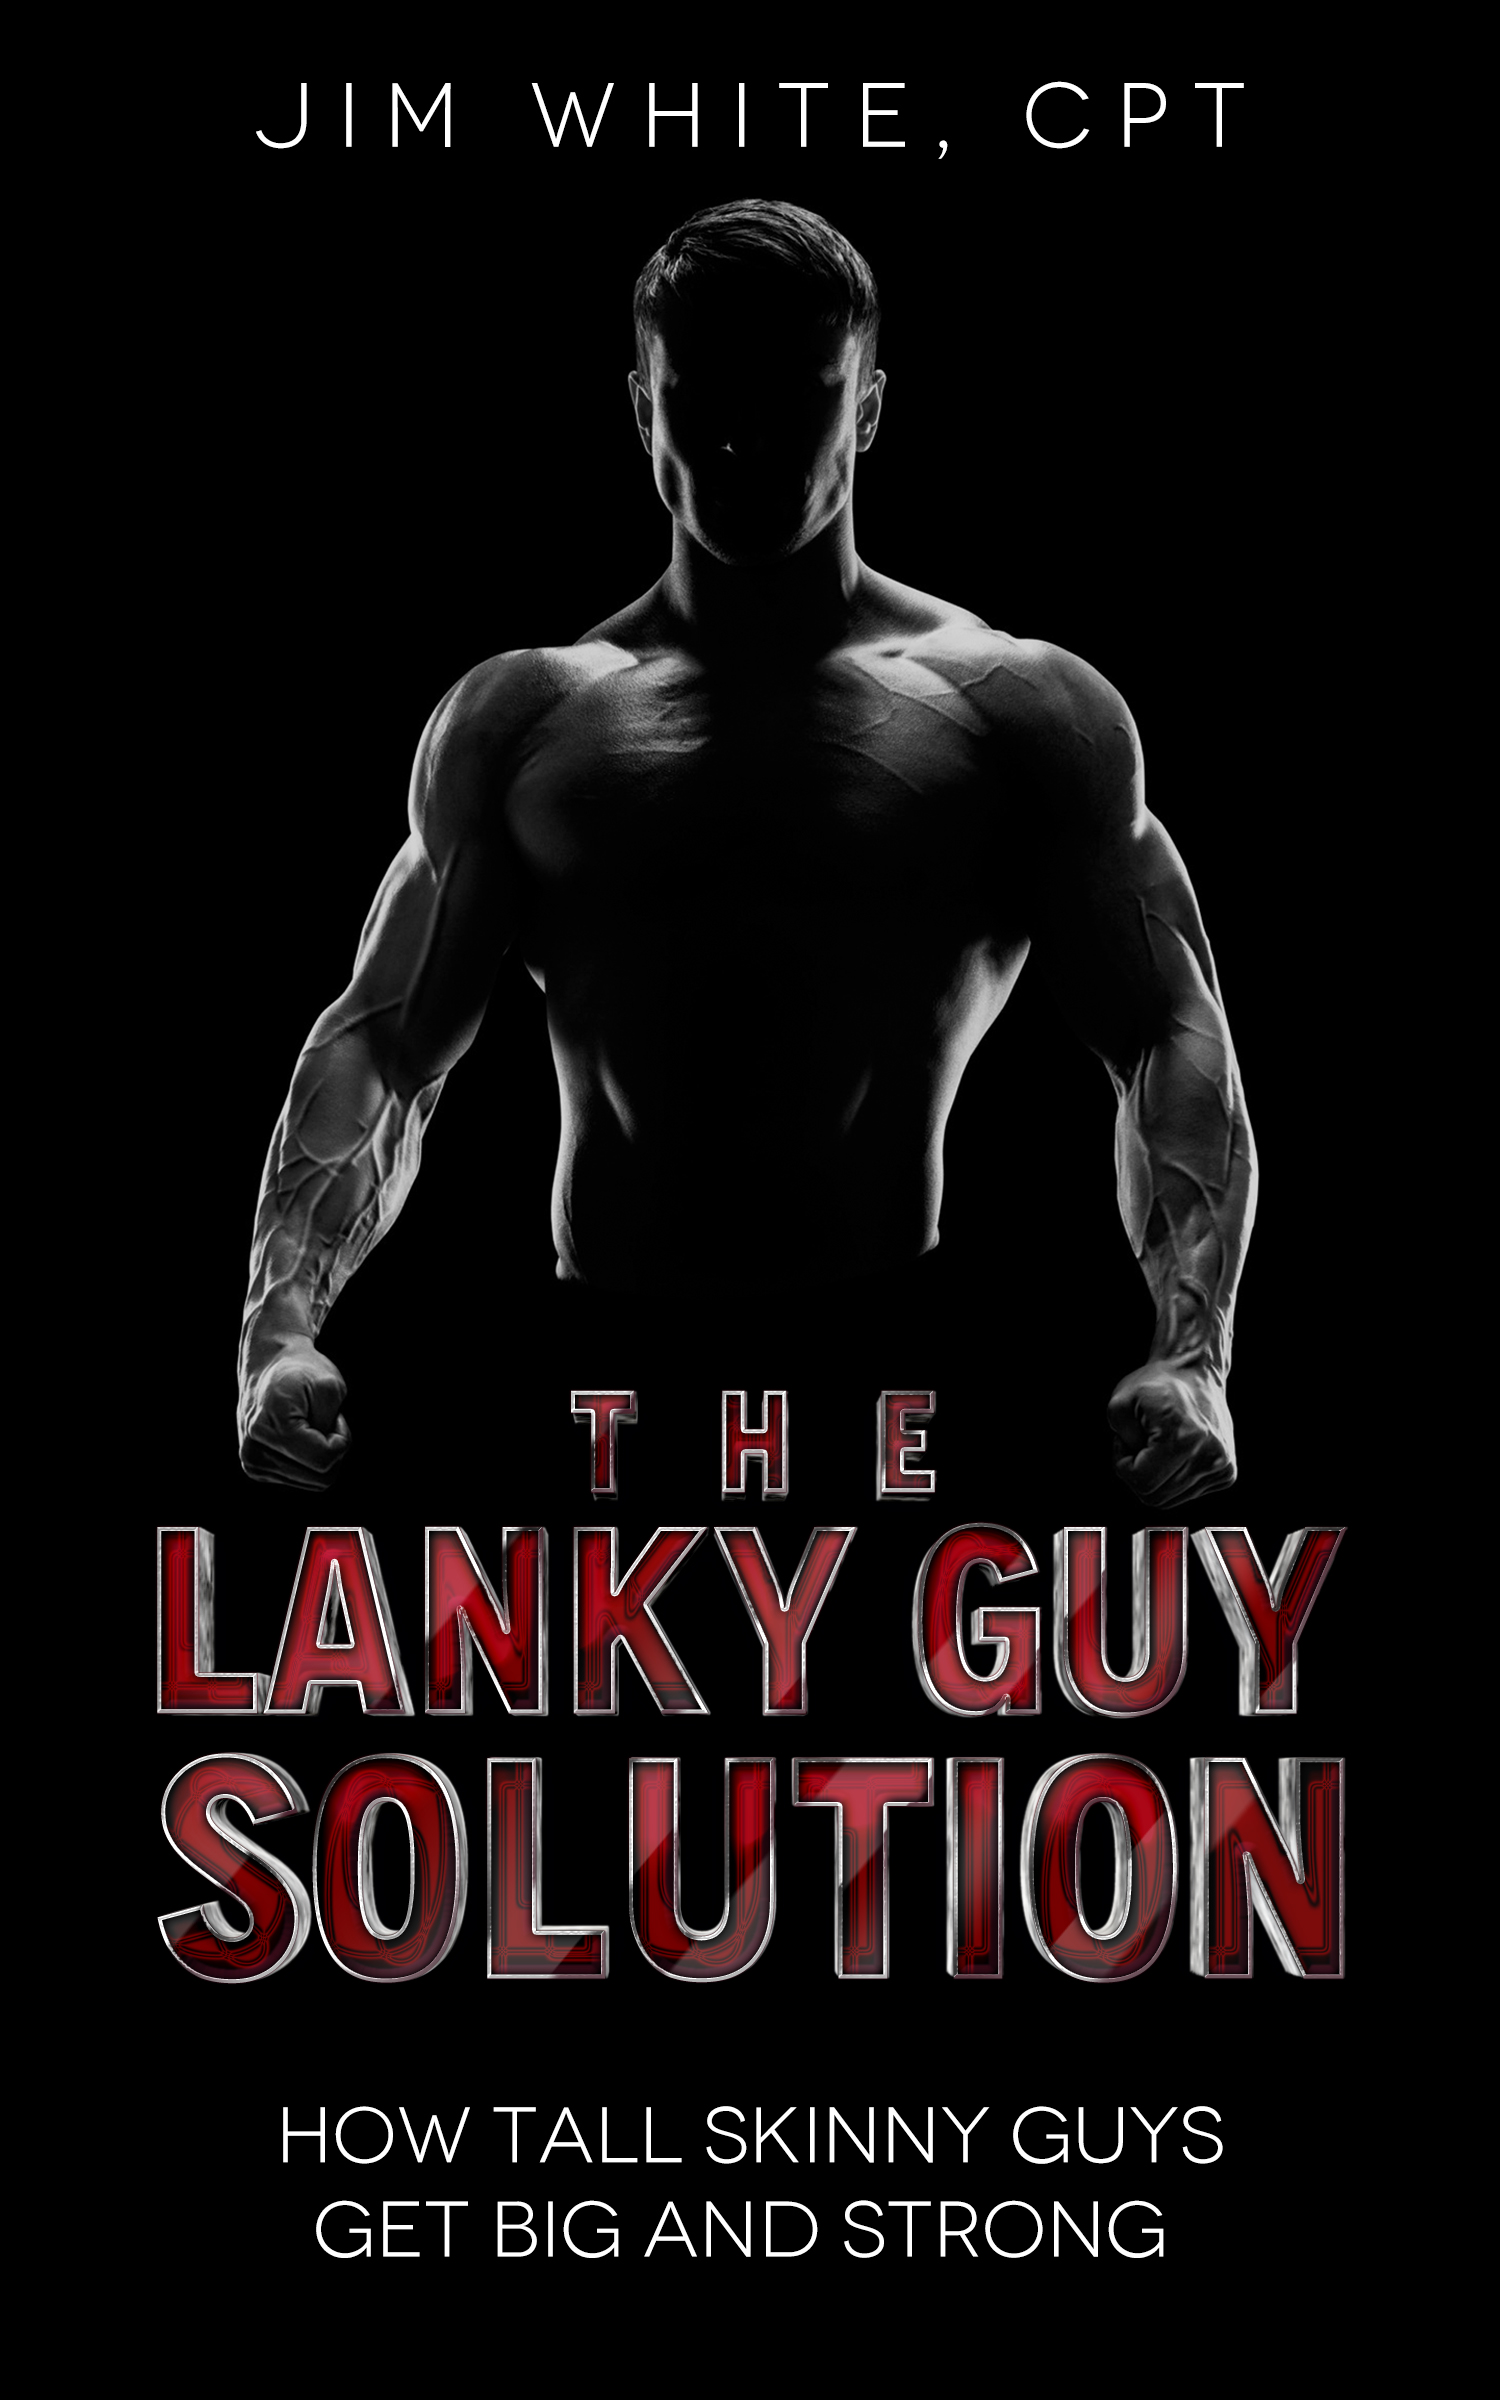 The_Lanky_Guy_Solution.jpg